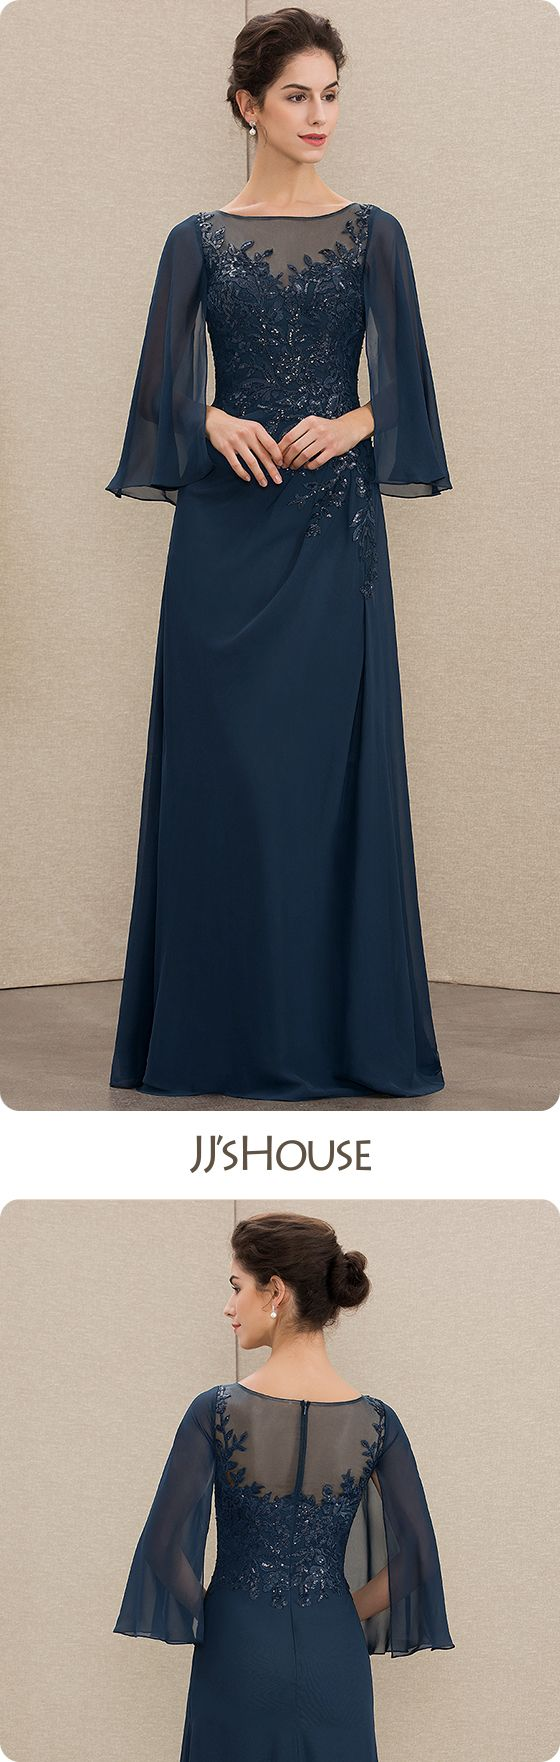 JJsHouse A-Line Scoop Neck Floor-Length Chiffon Lace Mother of the Bride Dress With Sequins